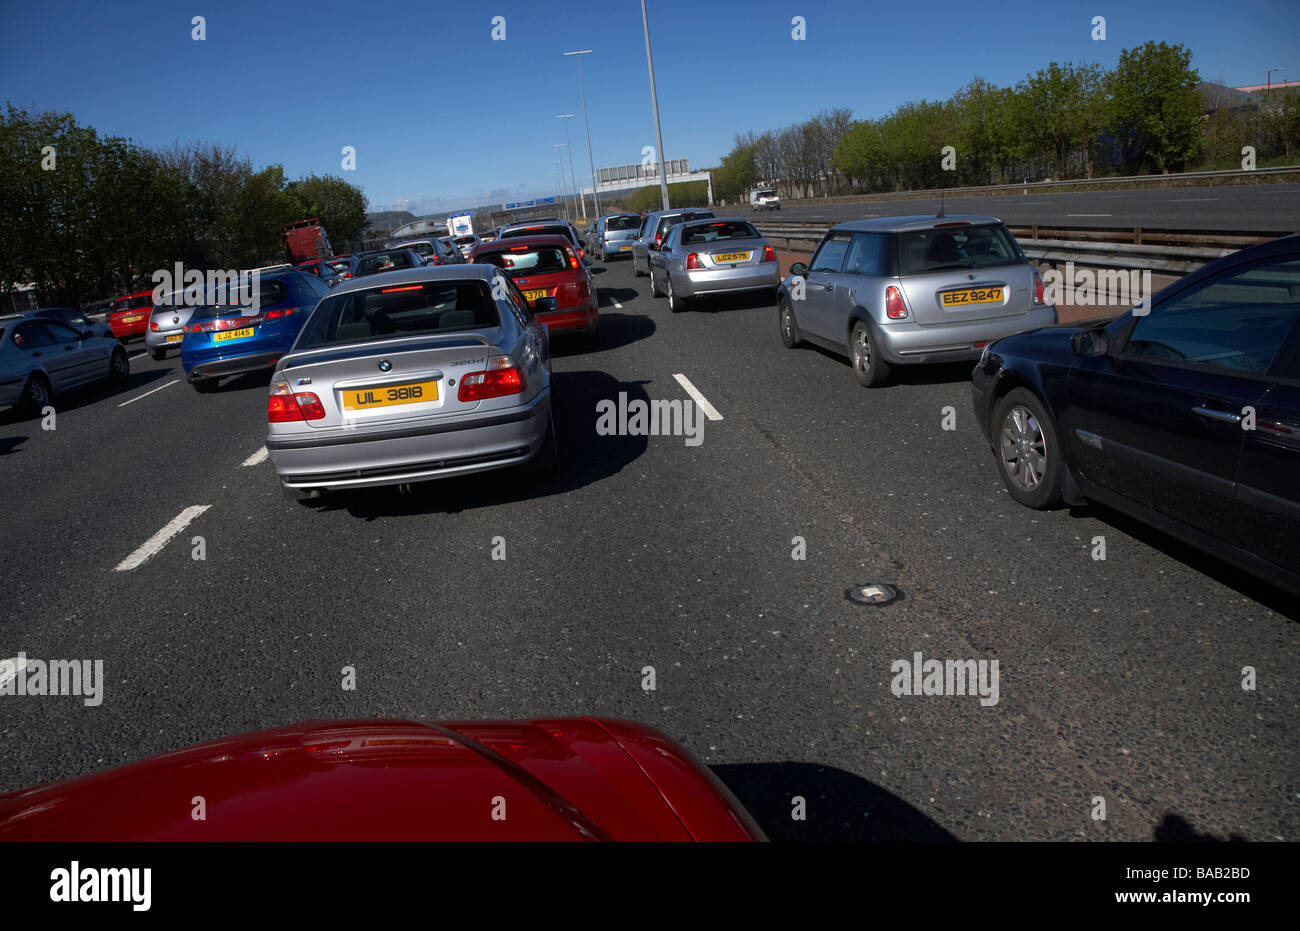 traffic jam on the M2 motorway outside belfast in northern ireland on a bank holiday - Stock Image